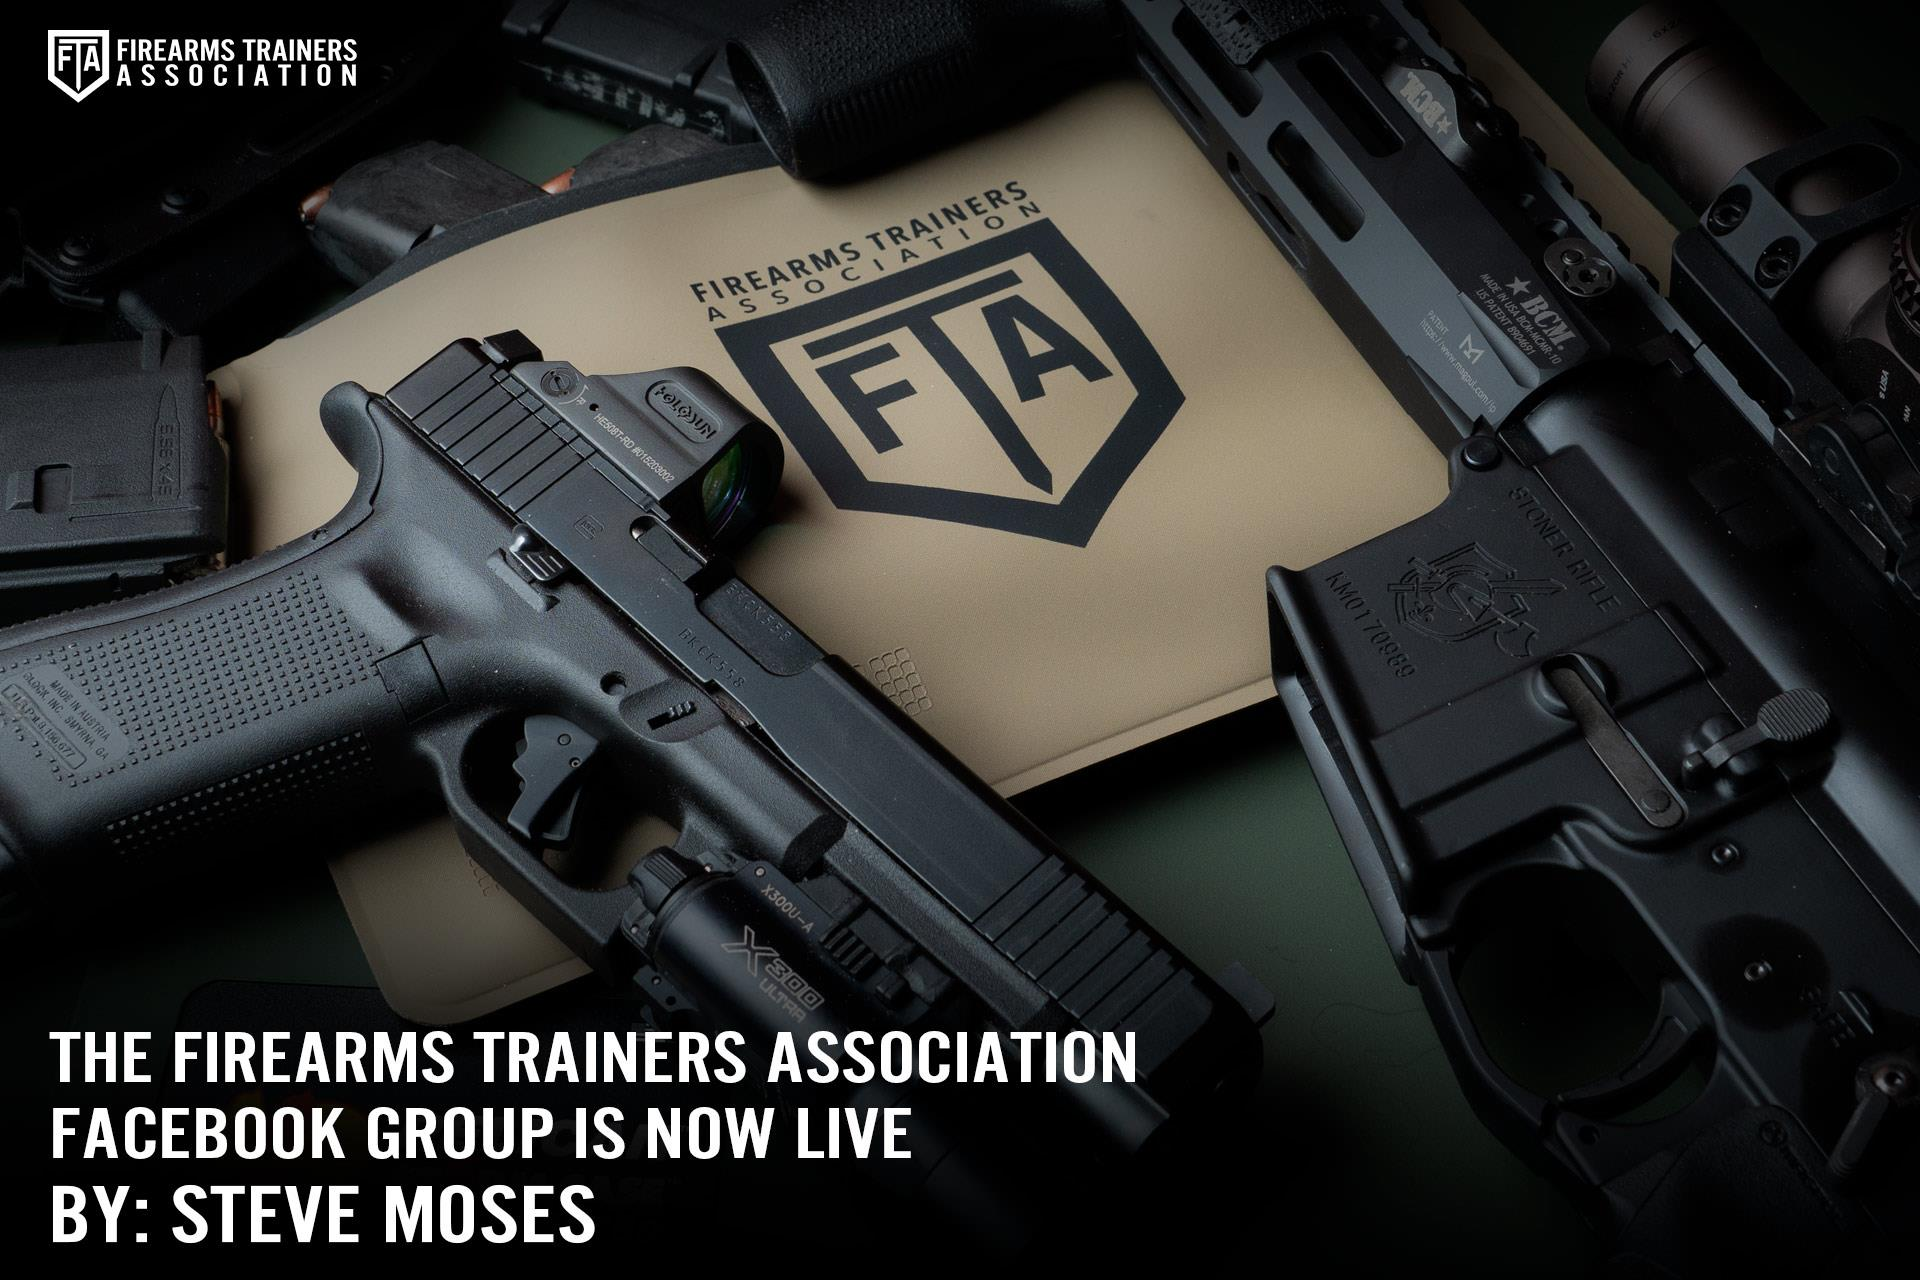 THE FIREARMS TRAINERS ASSOCIATION FACEBOOK GROUP IS NOW LIVE